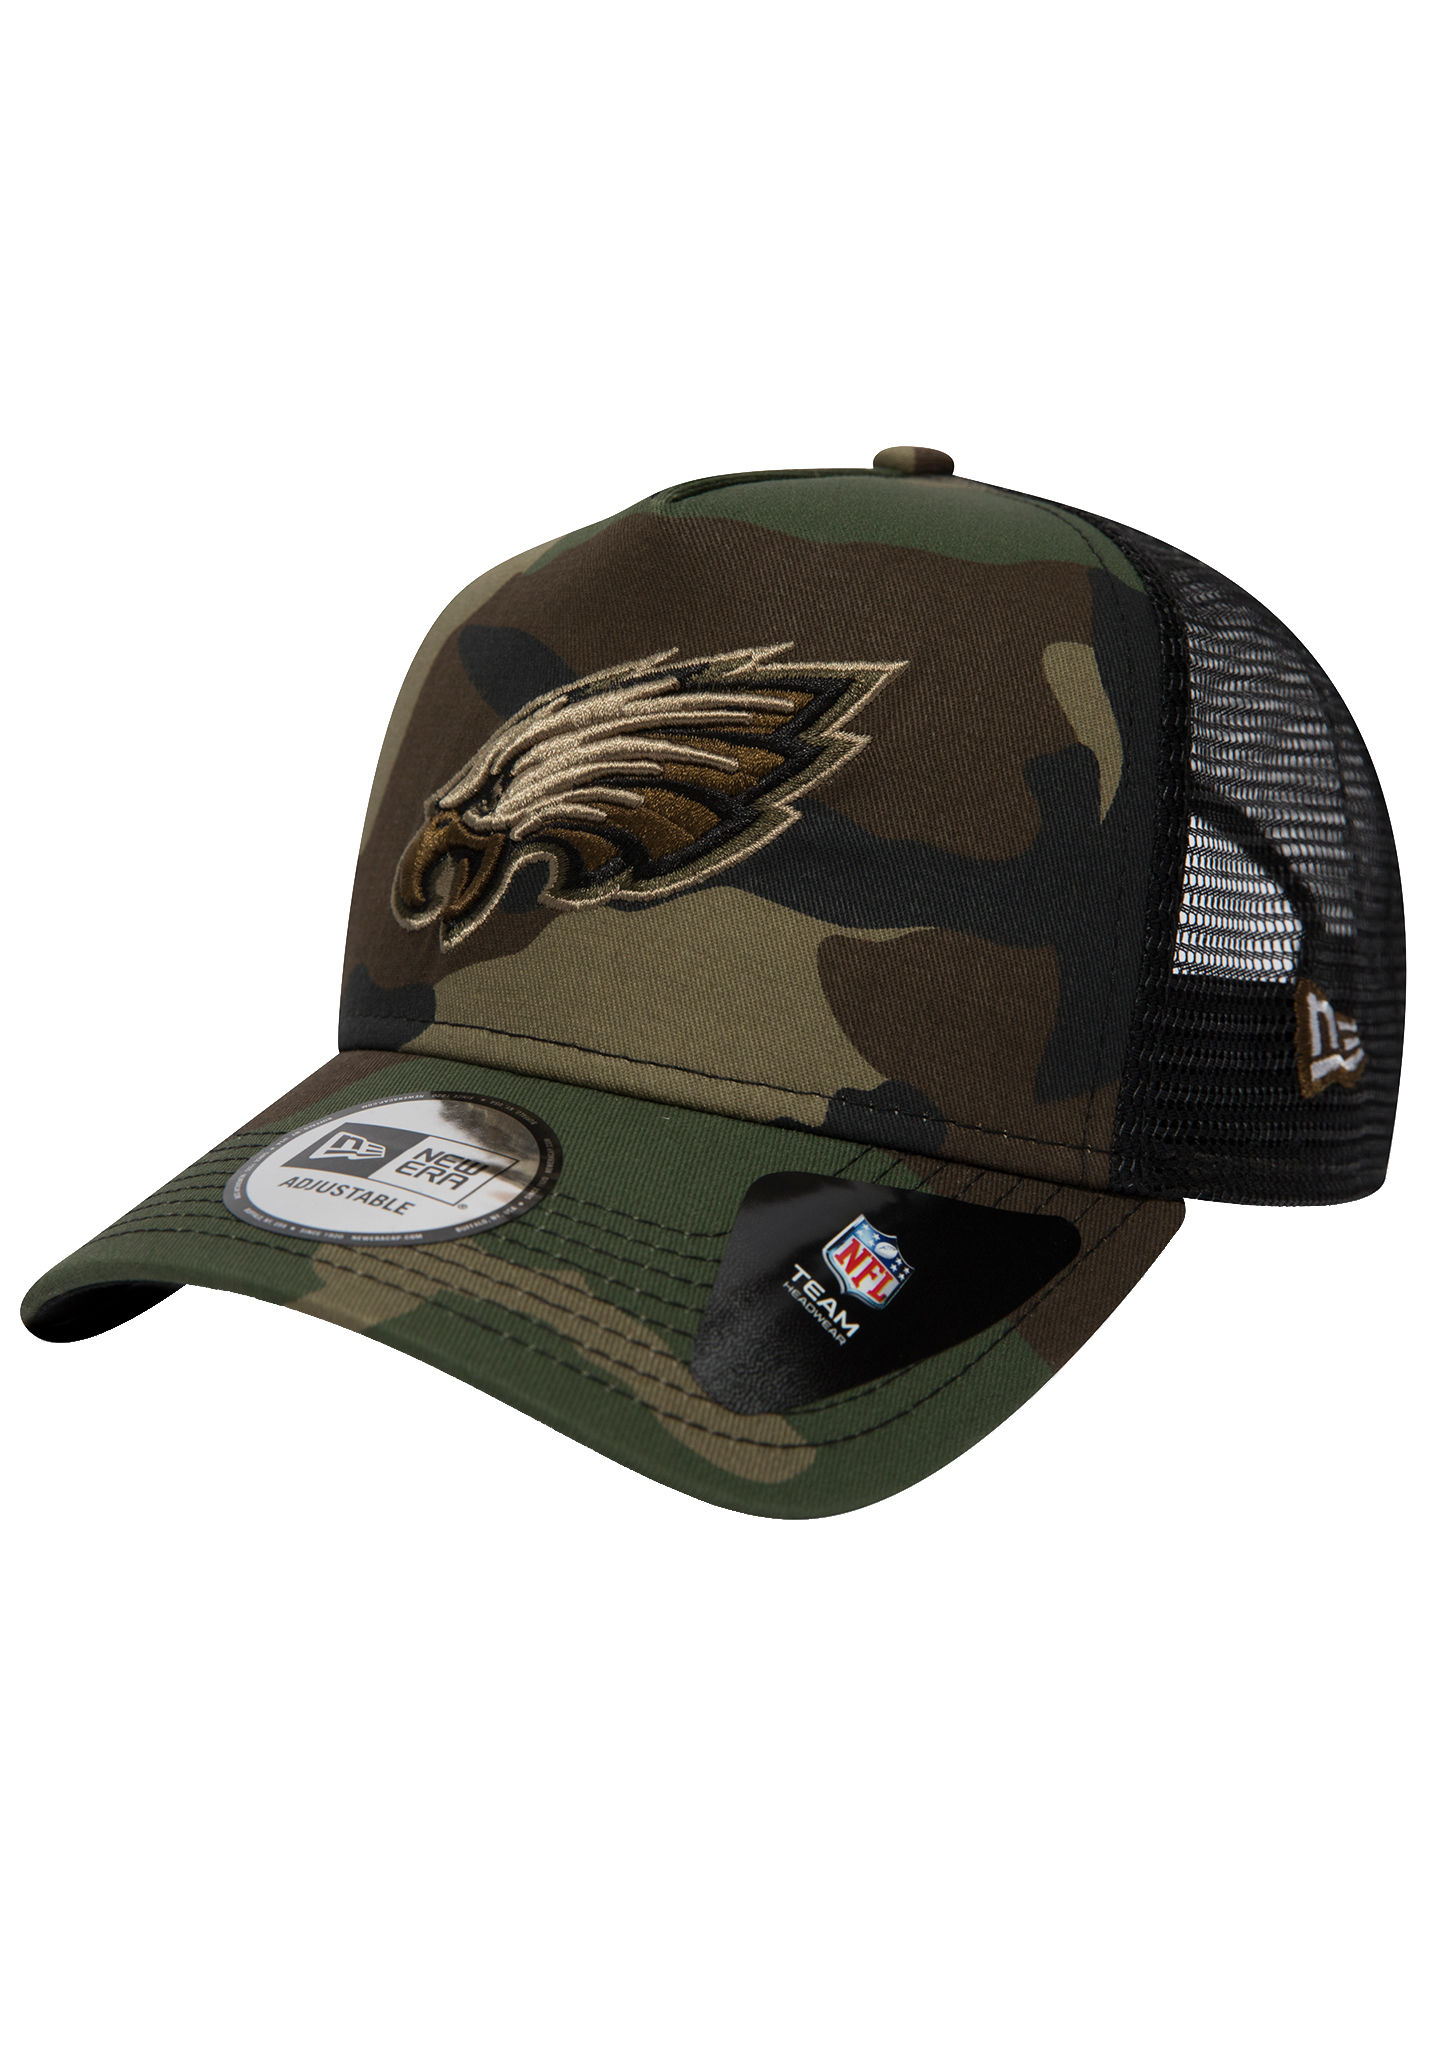 11aa501663 NEW Era Philadelphia Eagles - Trucker Cap - Camo - Planet Sports